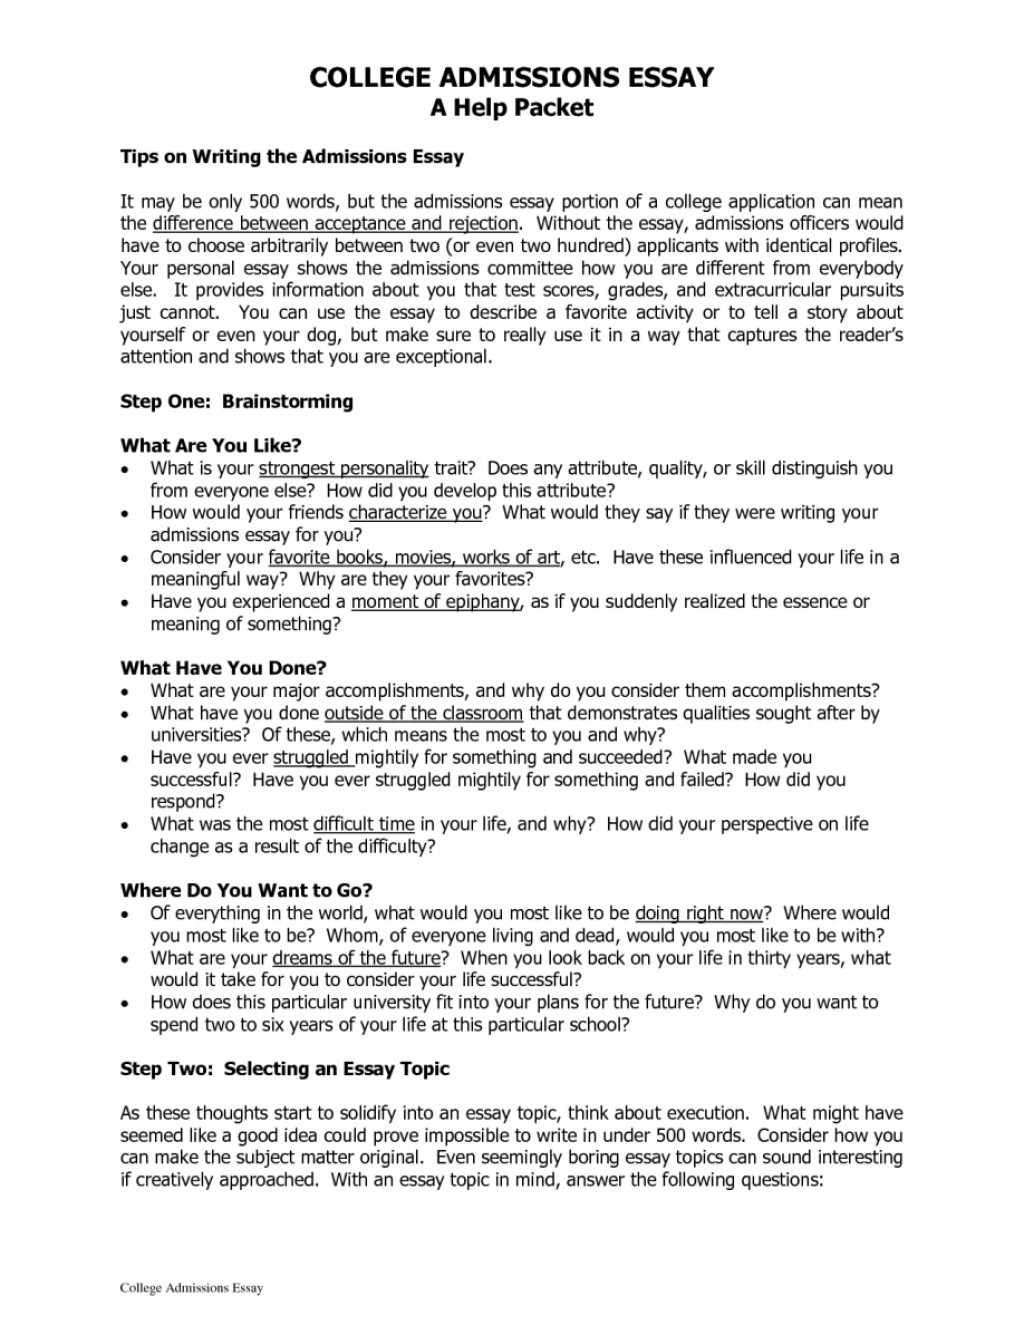 003 College Entry Essay Cover Letter Example Of Personal For Application Good Statement Applications Sa What Makes Best How To Write Examples Essays Amazing Admissions About Autism Tips Admission Ivy League Large